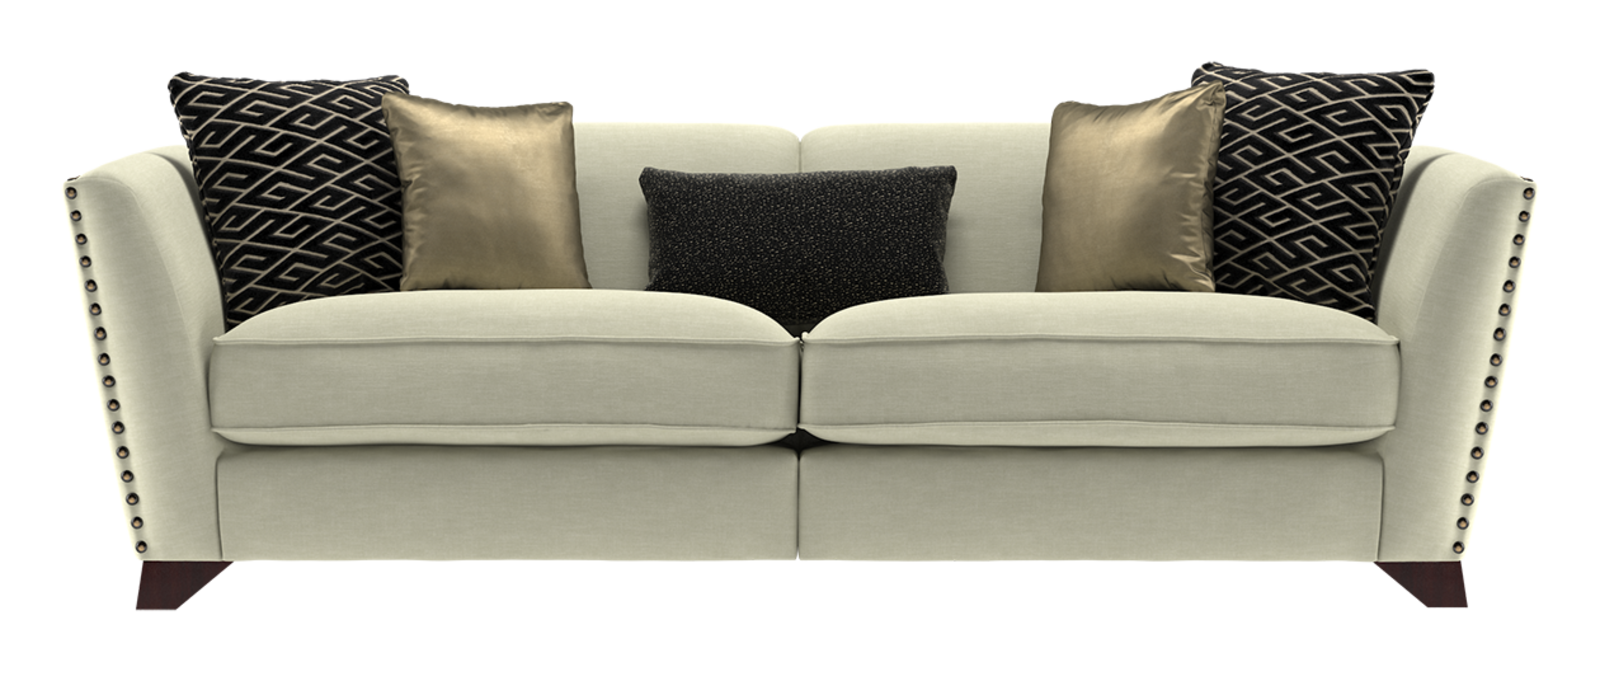 Sofology Quote Alexa Sofology Love This Couch But Want It In The Darker